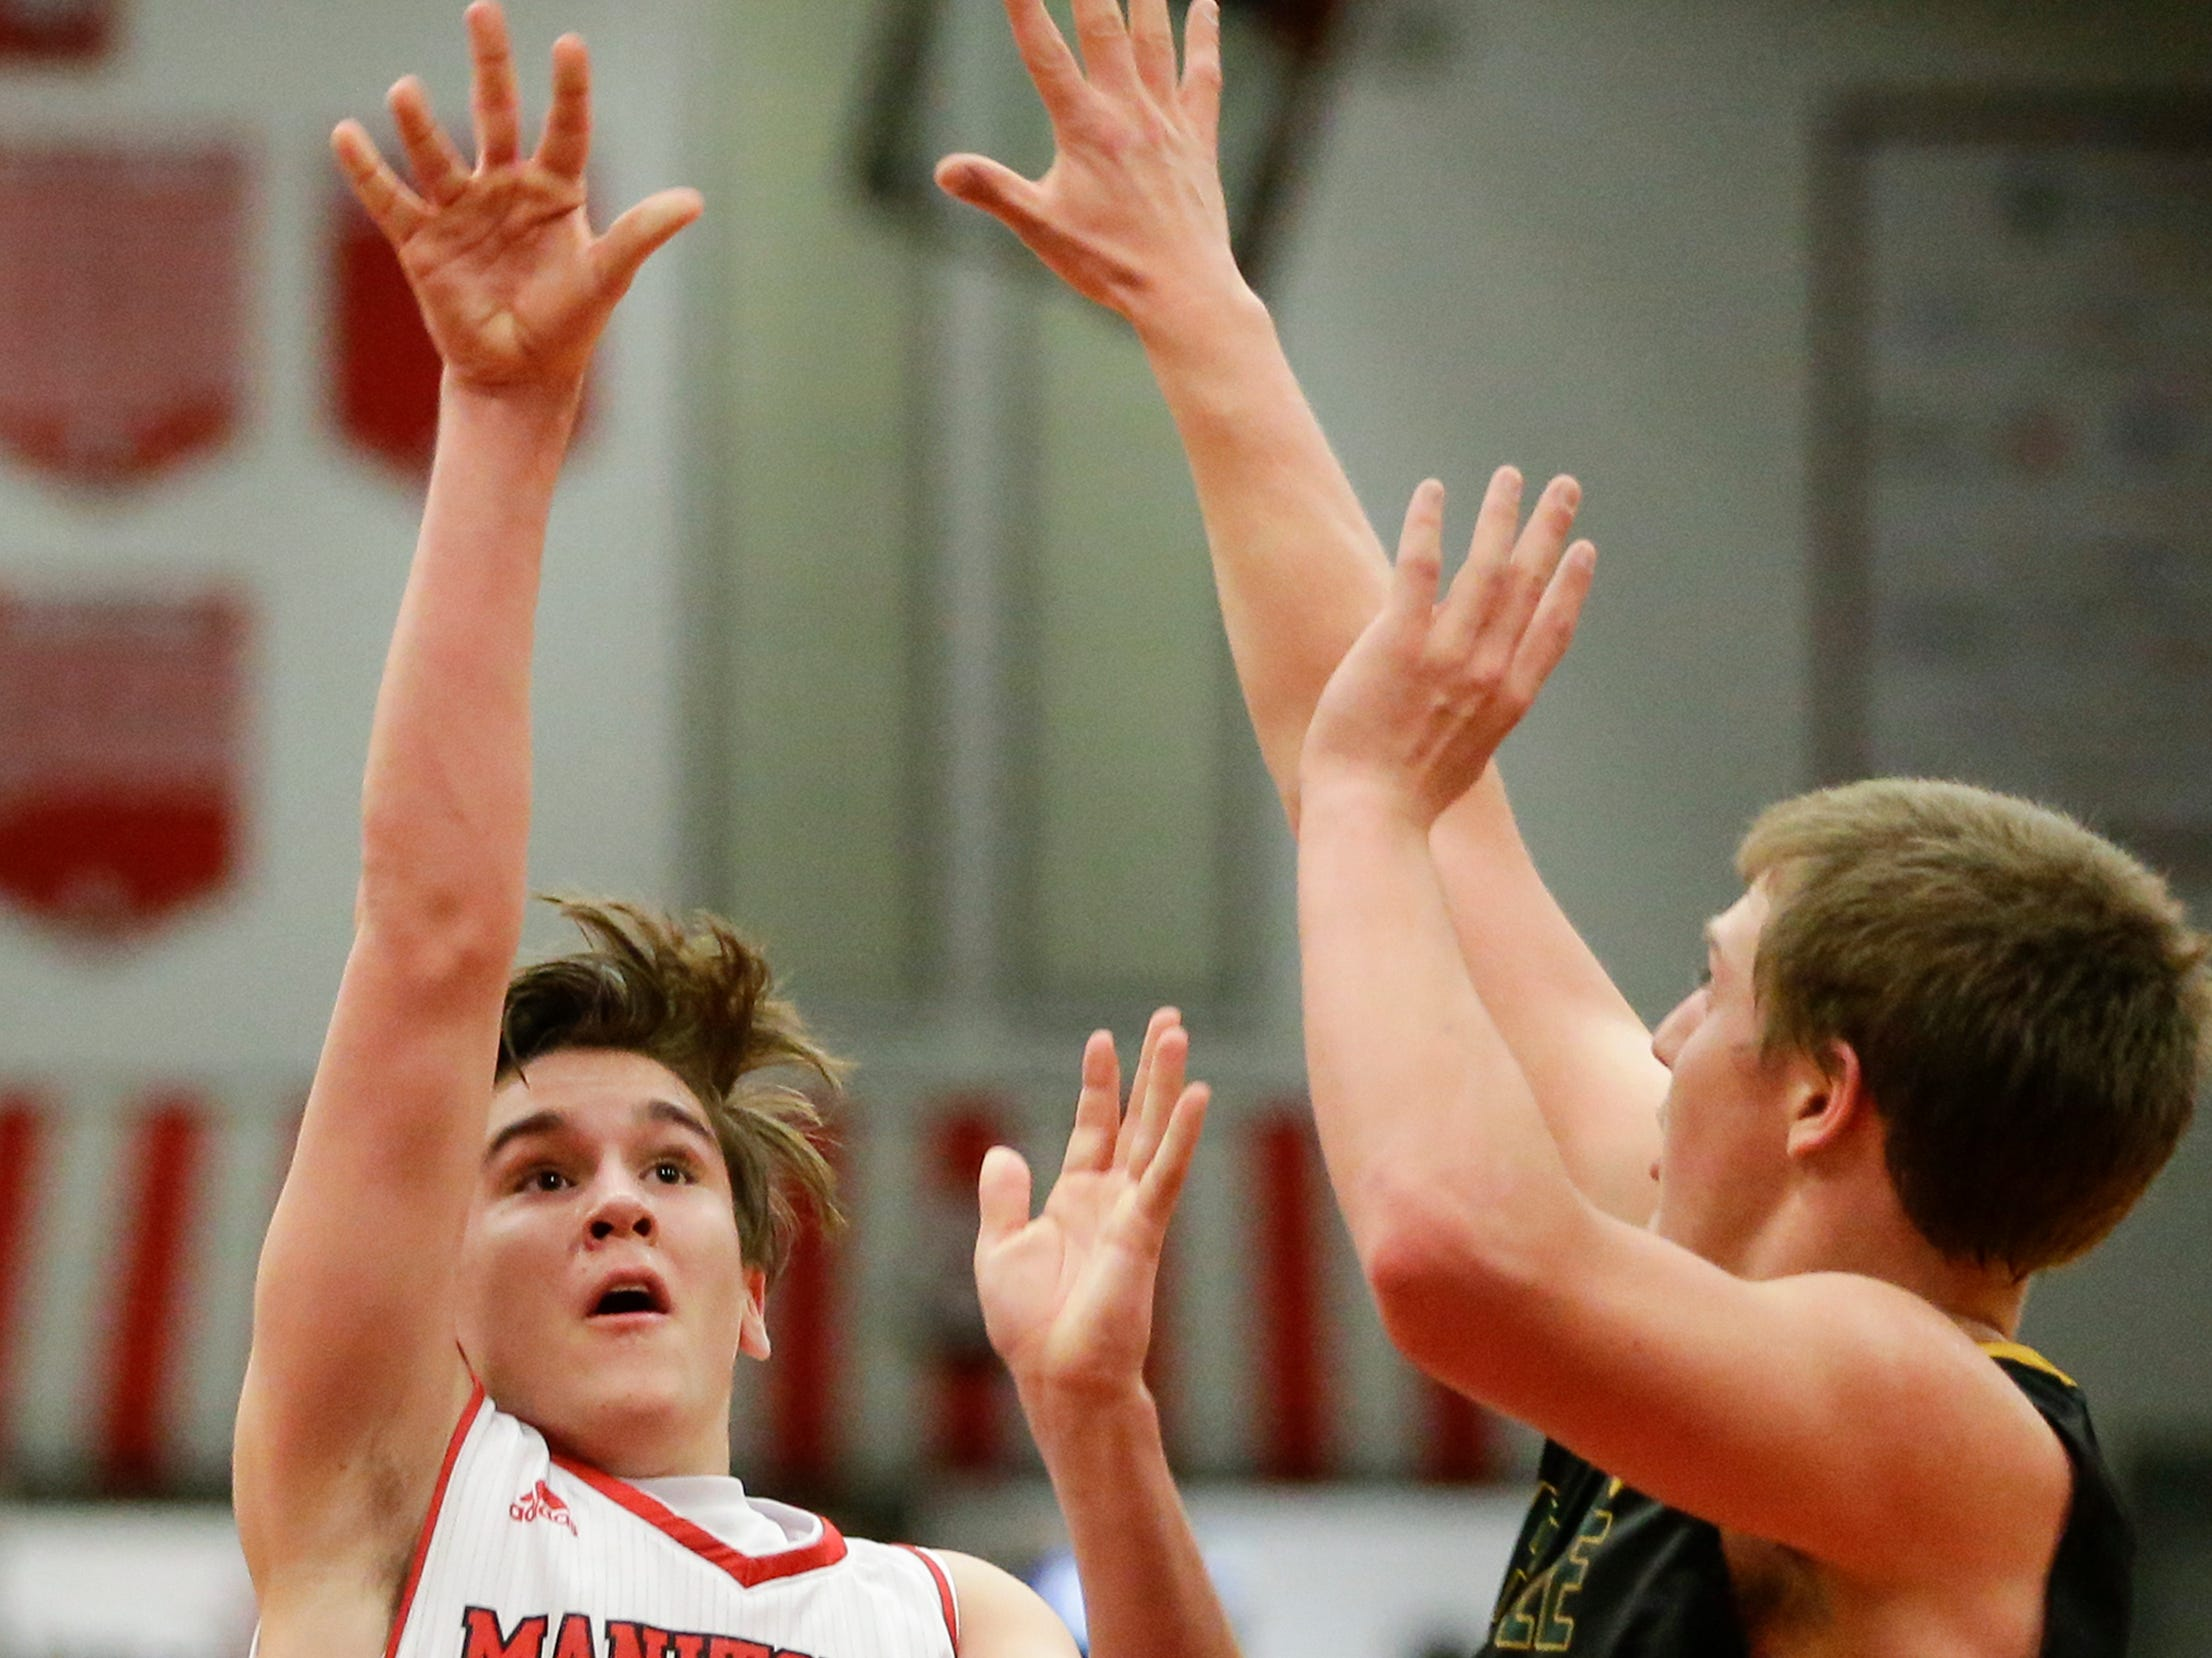 Manitowoc Lincoln's Mason Dopirak shoots against Green Bay Preble during boys FRCC basketball at Manitowoc Lincoln High School Friday, December 21, 2018, in Manitowoc, Wis. Joshua Clark/USA TODAY NETWORK-Wisconsin